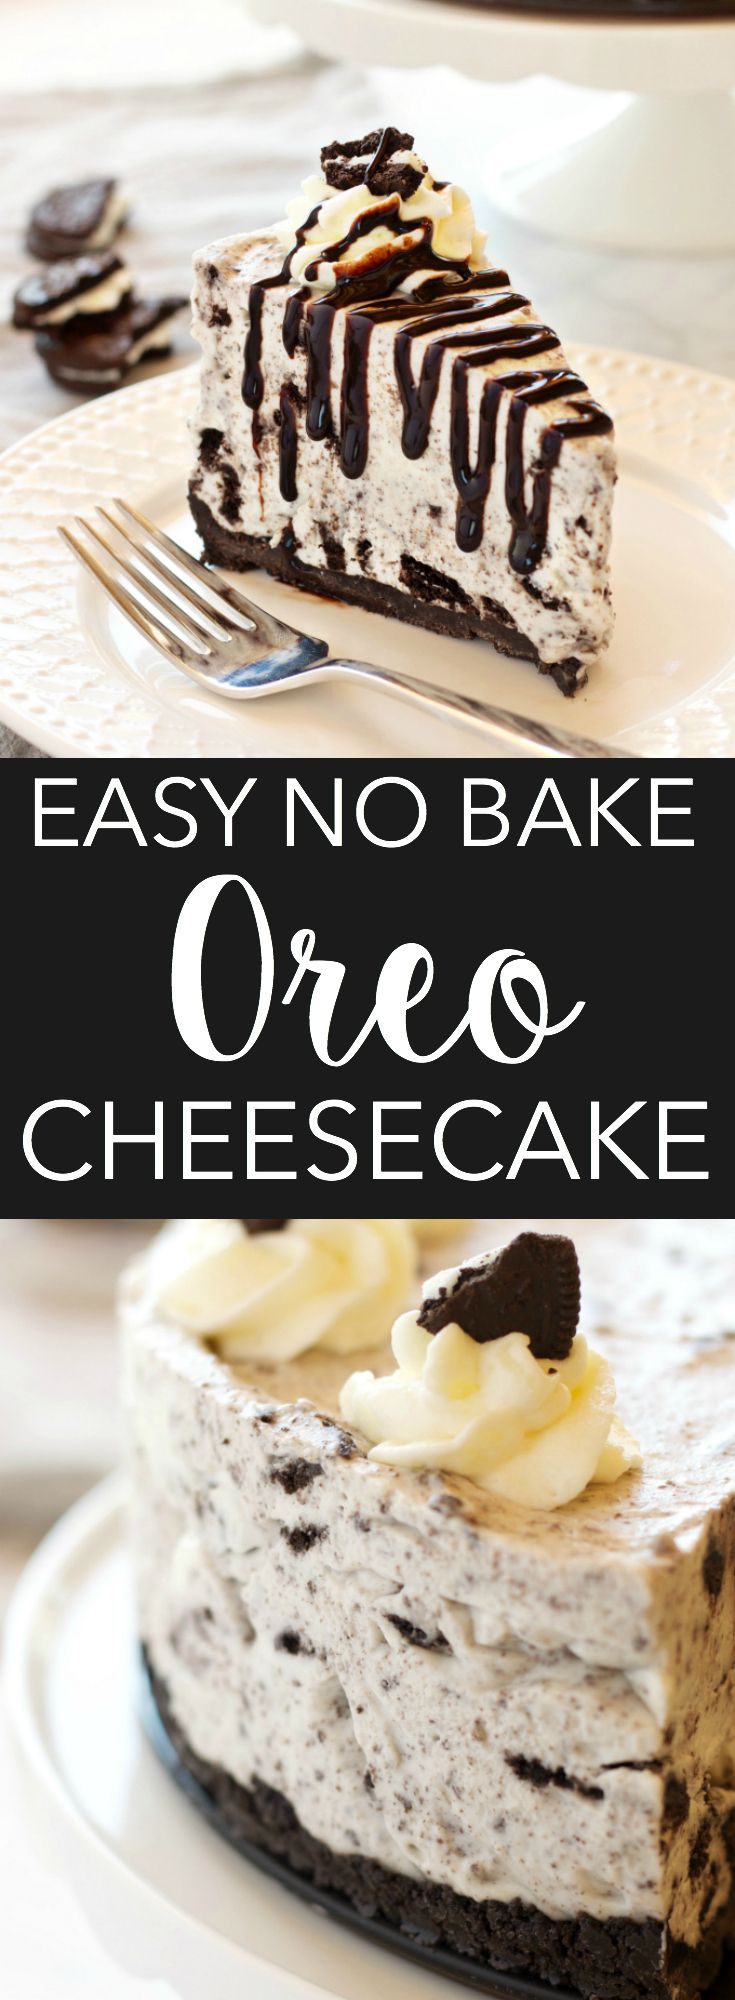 This Easy No Bake Oreo Cheesecake is smooth and creamy - it's the perfect cheesecake recipe and it's SO easy to make! Recipe from thebusybaker.ca!